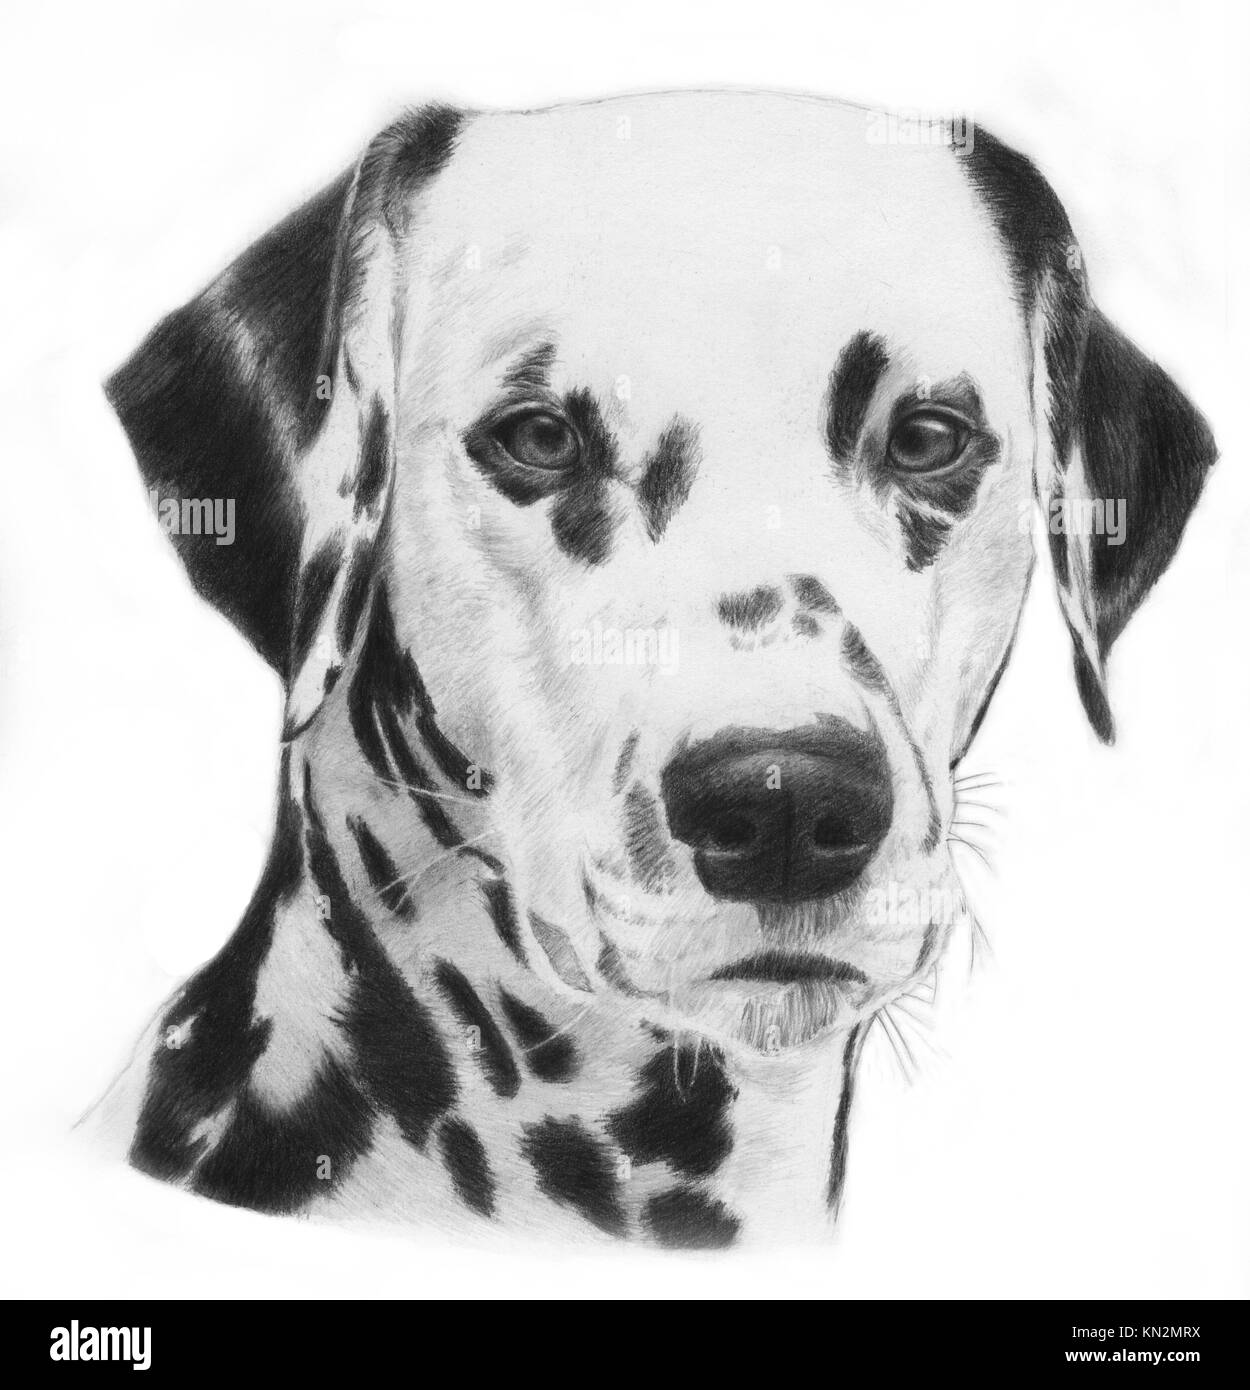 Dalmatian, hand drawn grayscale head of a dalmation dog illustration  Very realistic - Stock Image